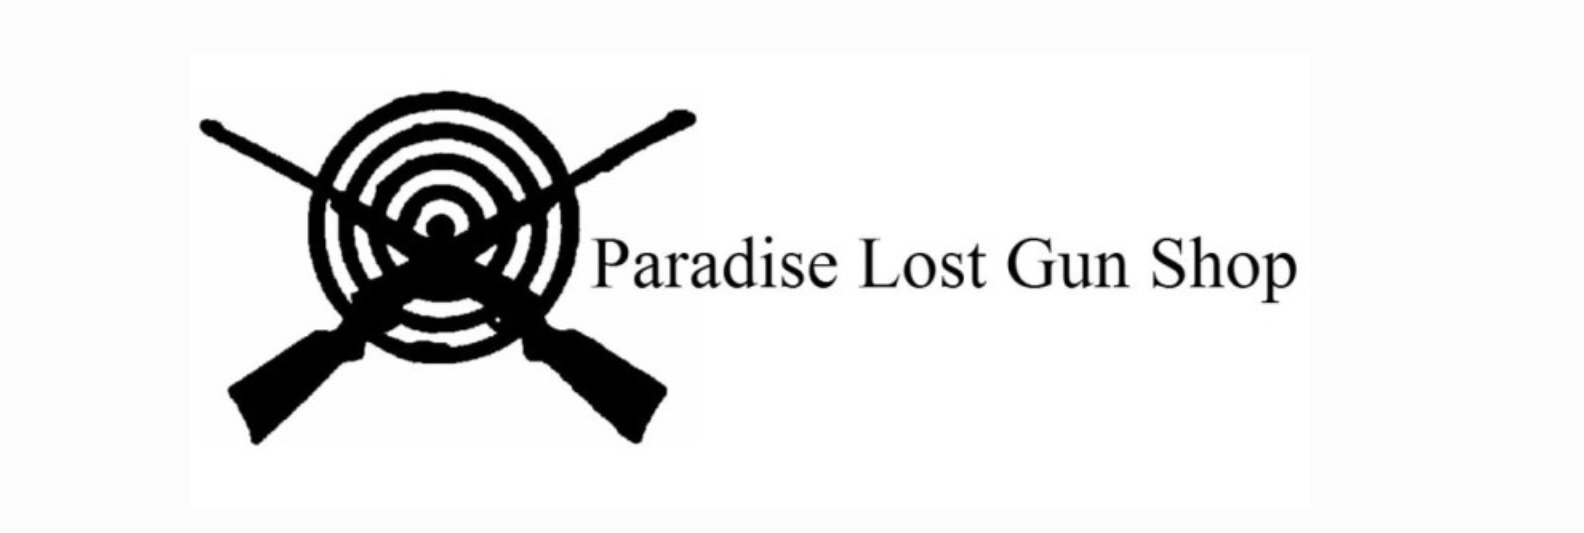 Paradise Lost Gun Shop Logo